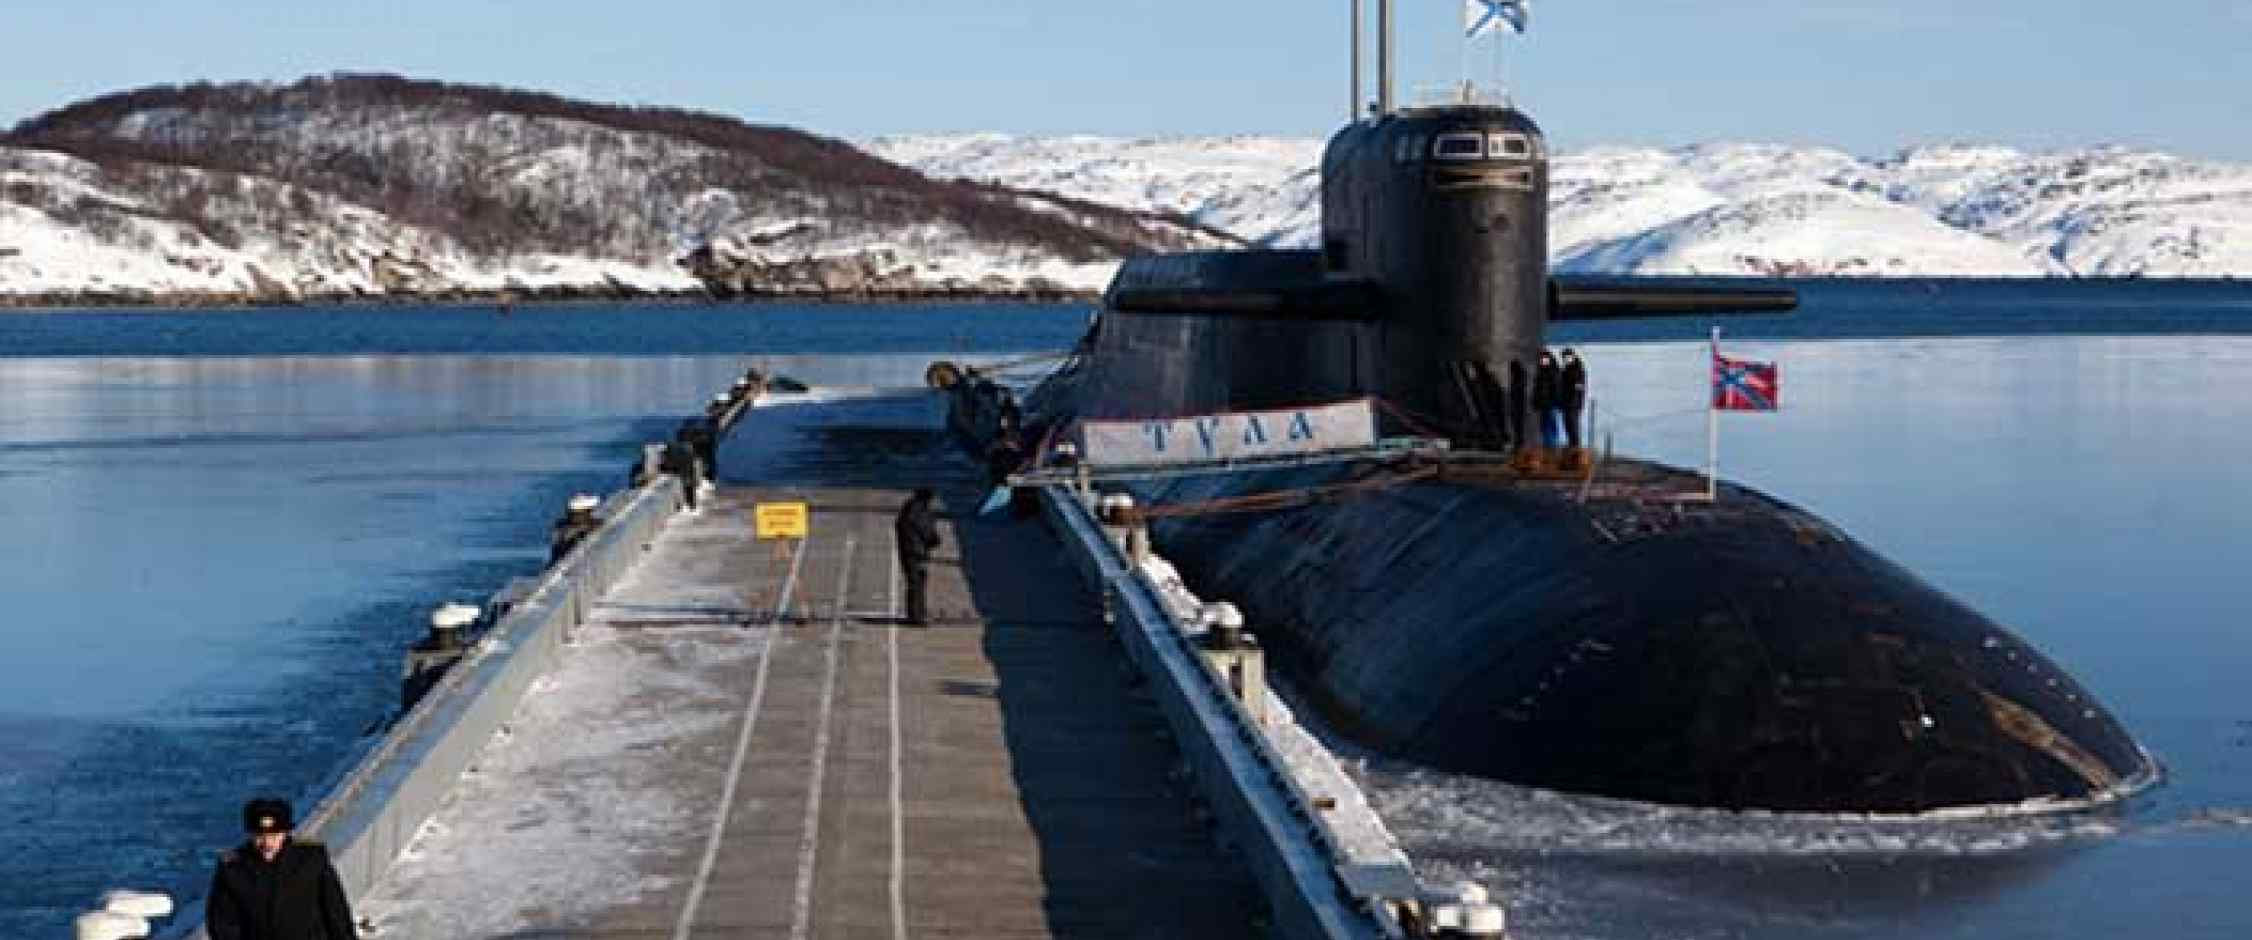 Russian Submarine Decommissioning